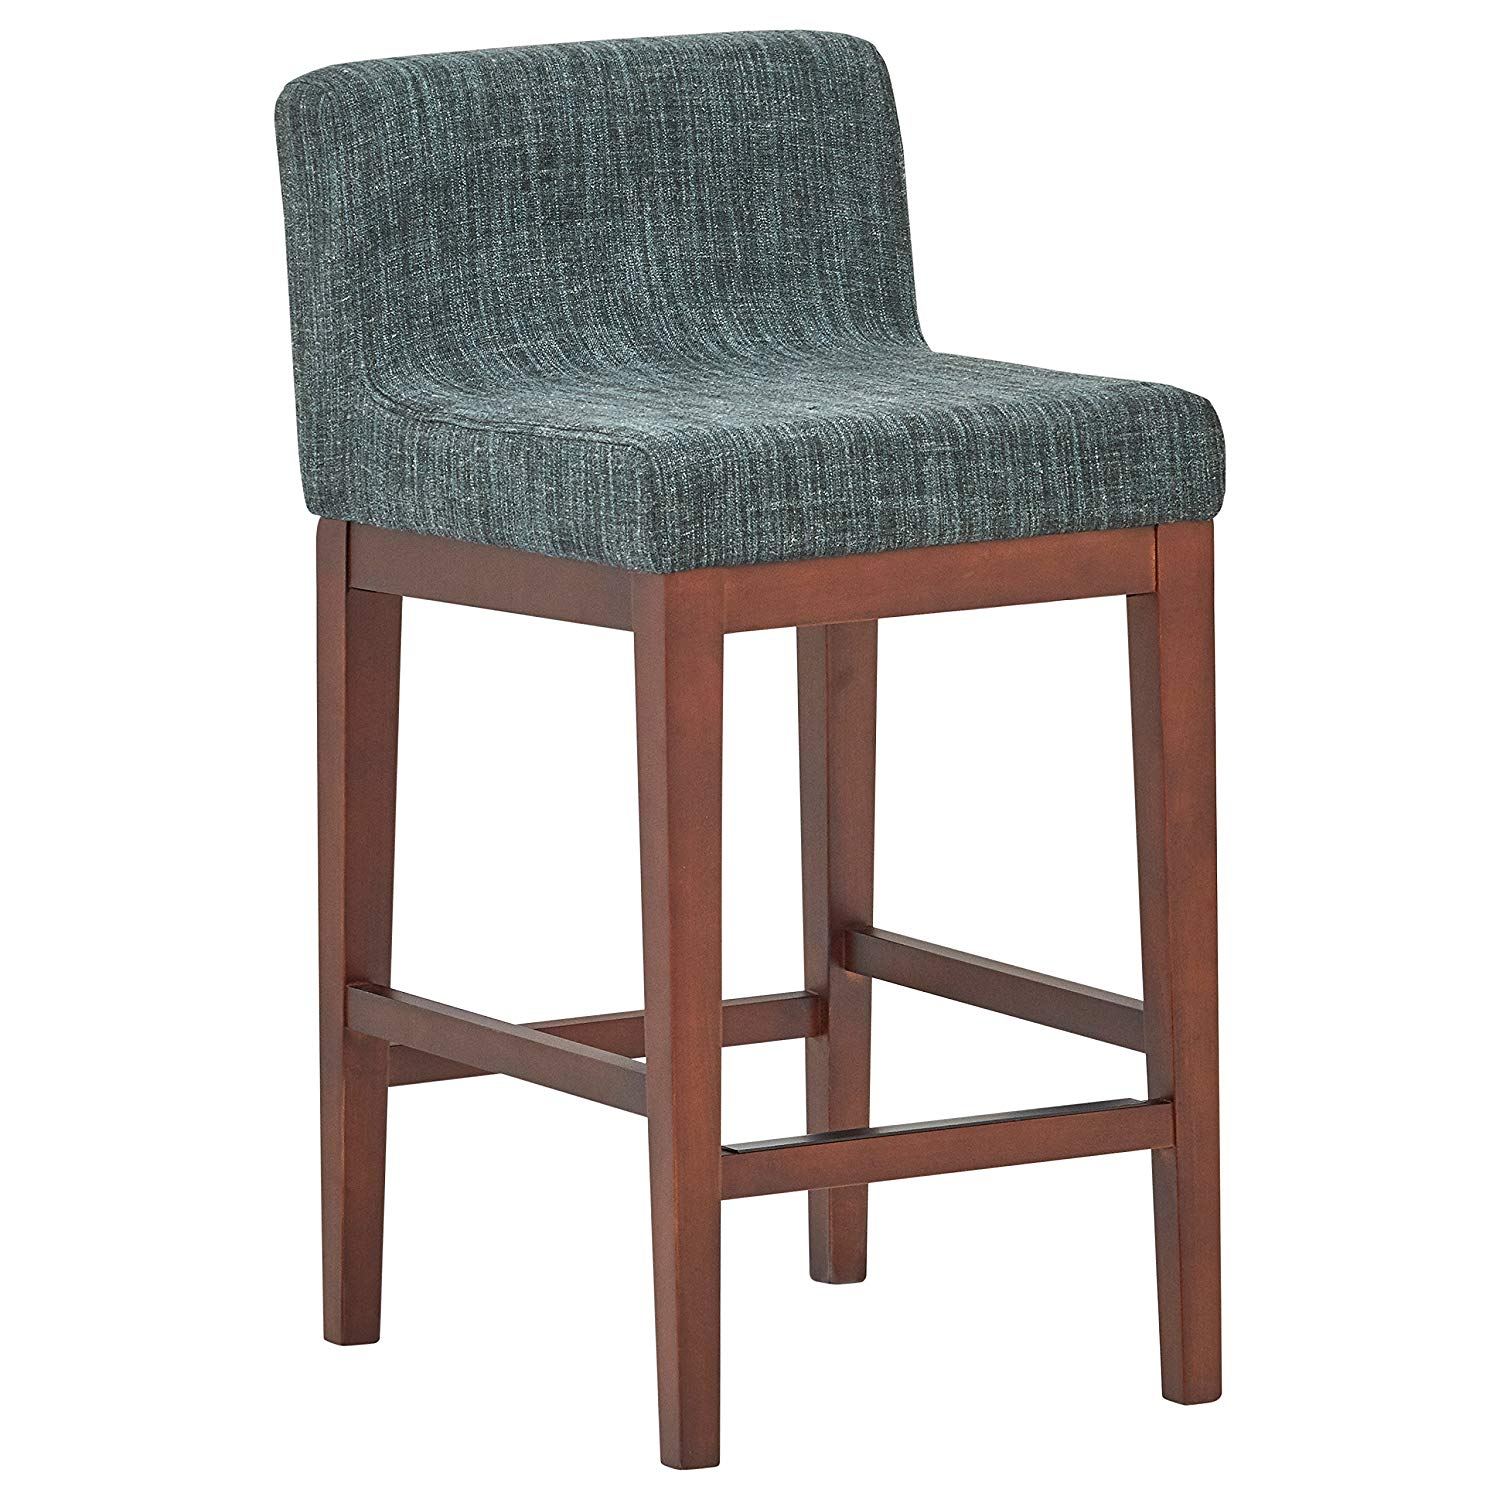 Rivet Mid-Century Low-Back Kitchen Counter Bar Stool | low back bar stools